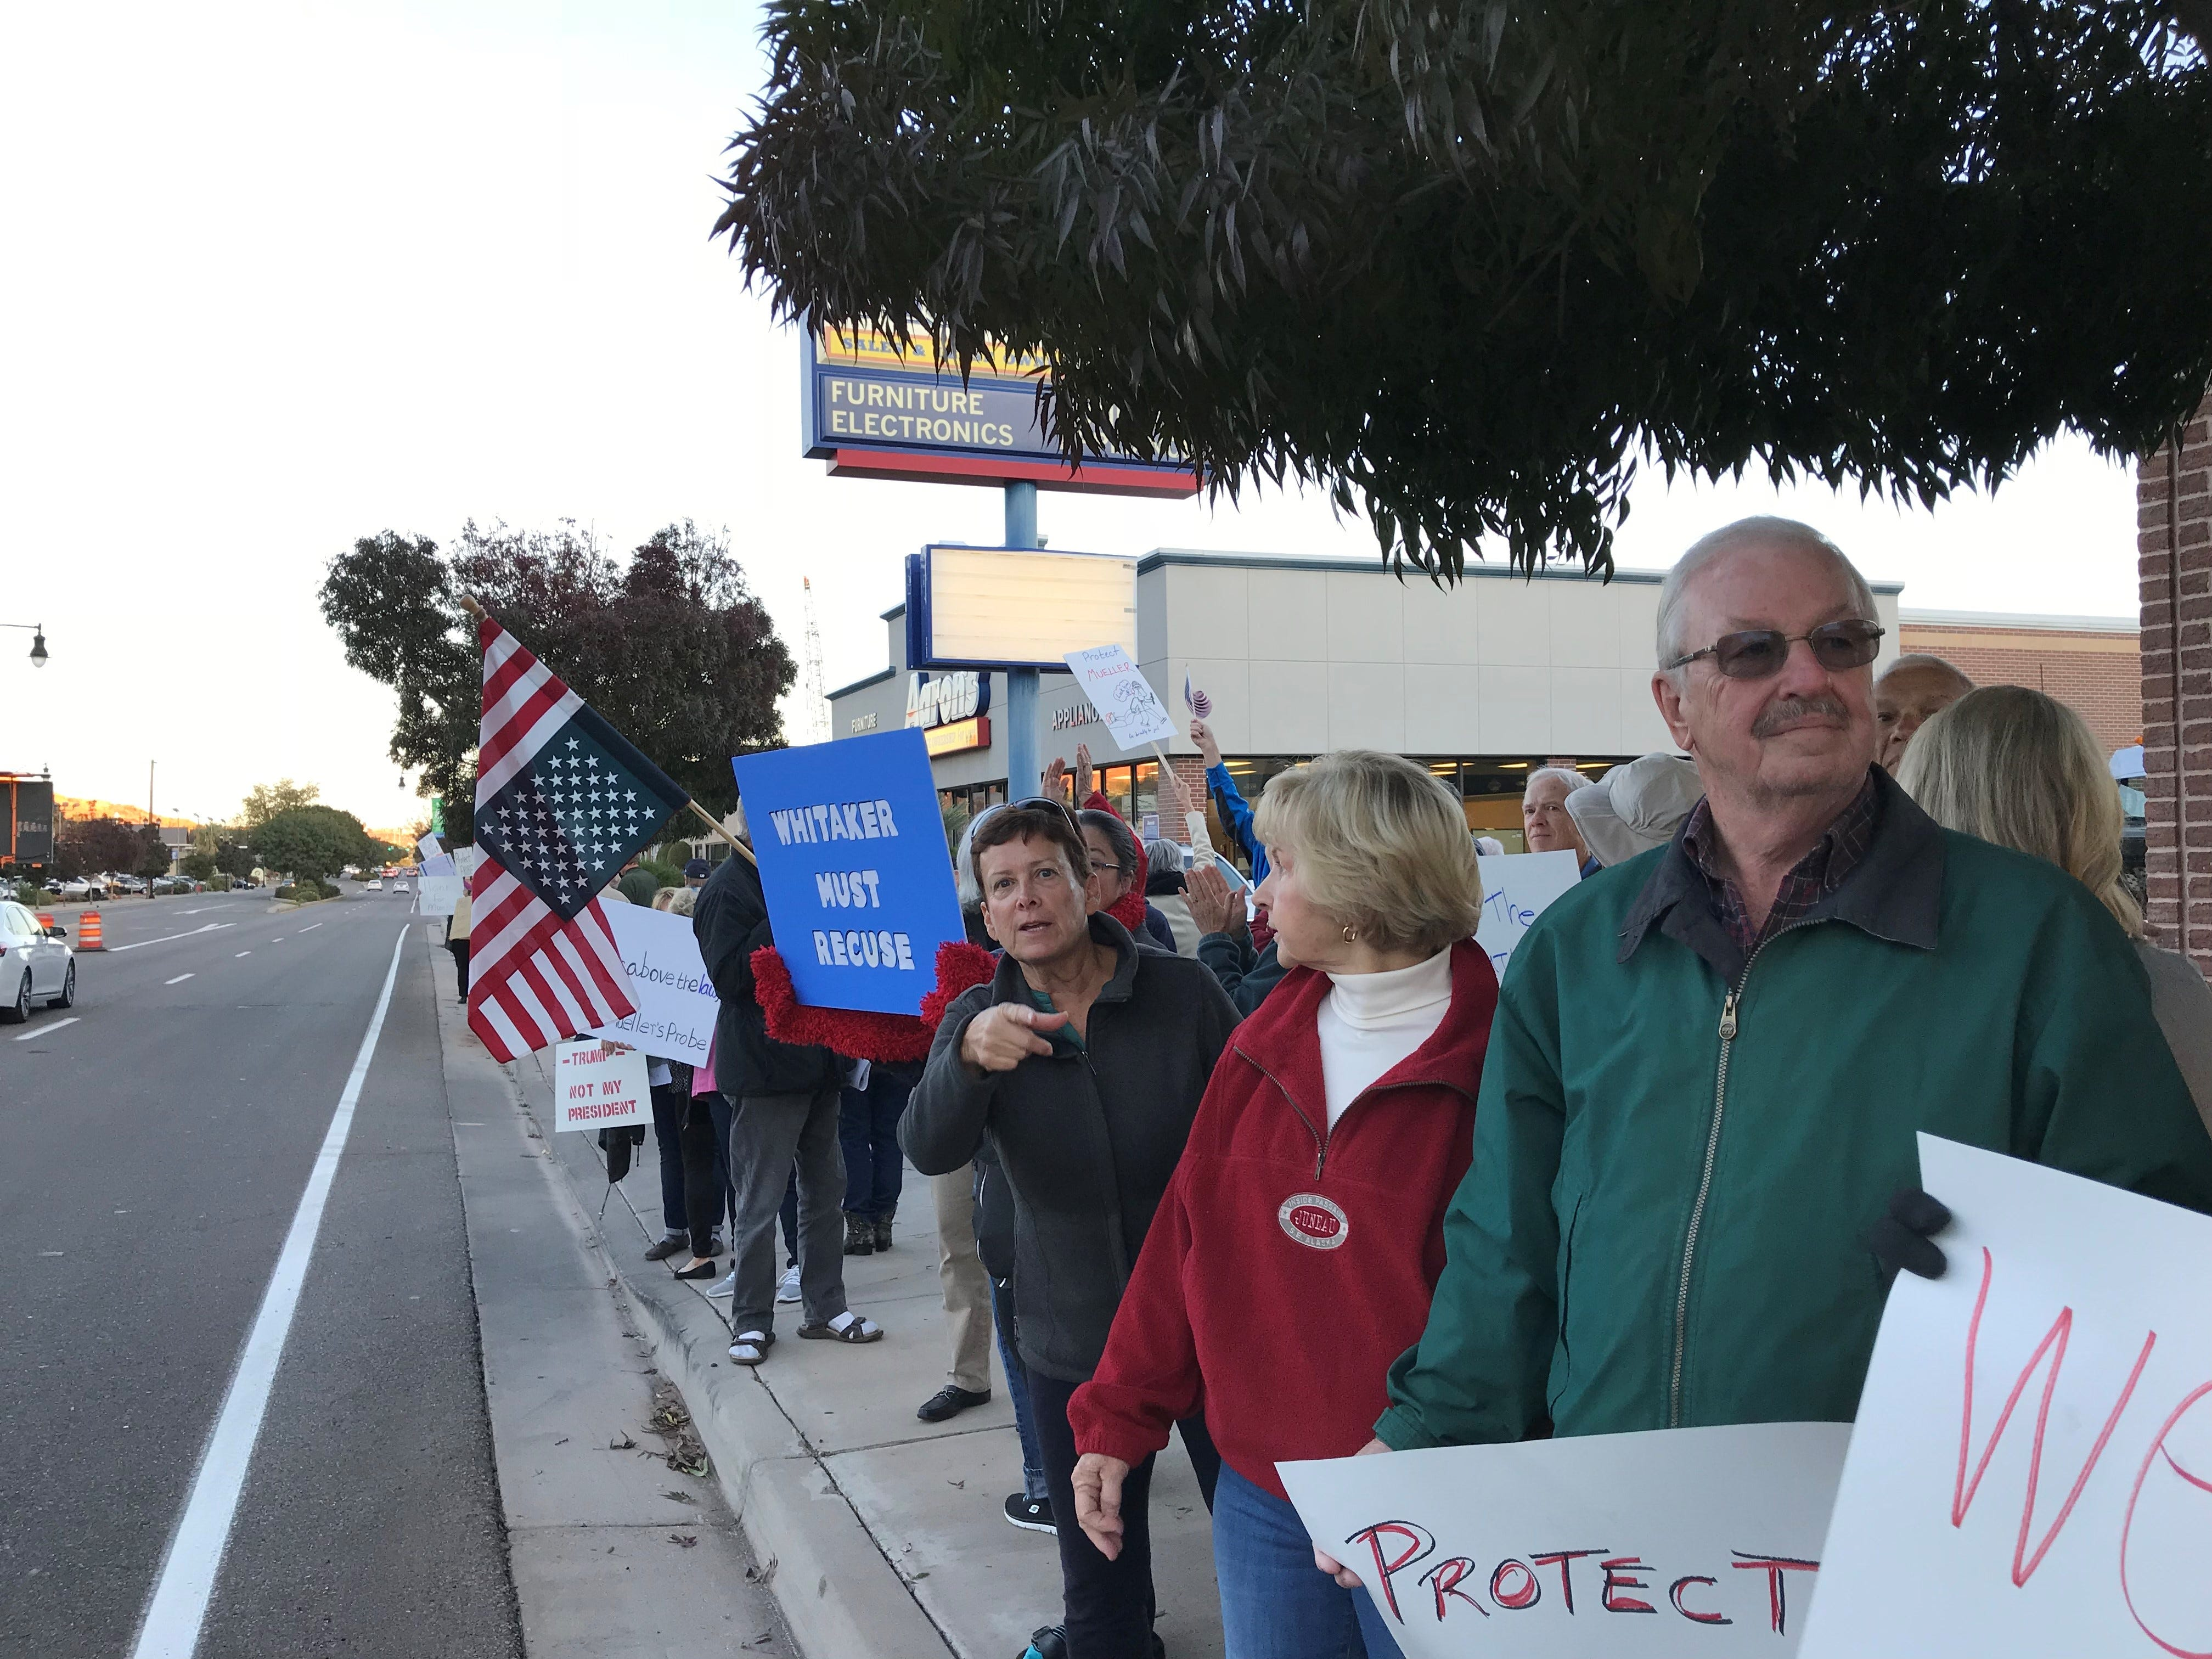 Protesters line St. George Blvd. Thursday in response to President Donald Trump's dismissal of Attorney General Jeff Sessions and worries about the future of an ongoing investigation into Russian meddling in the 2016 election. The even was one of hundreds organized across the U.S. November 8, 2018.